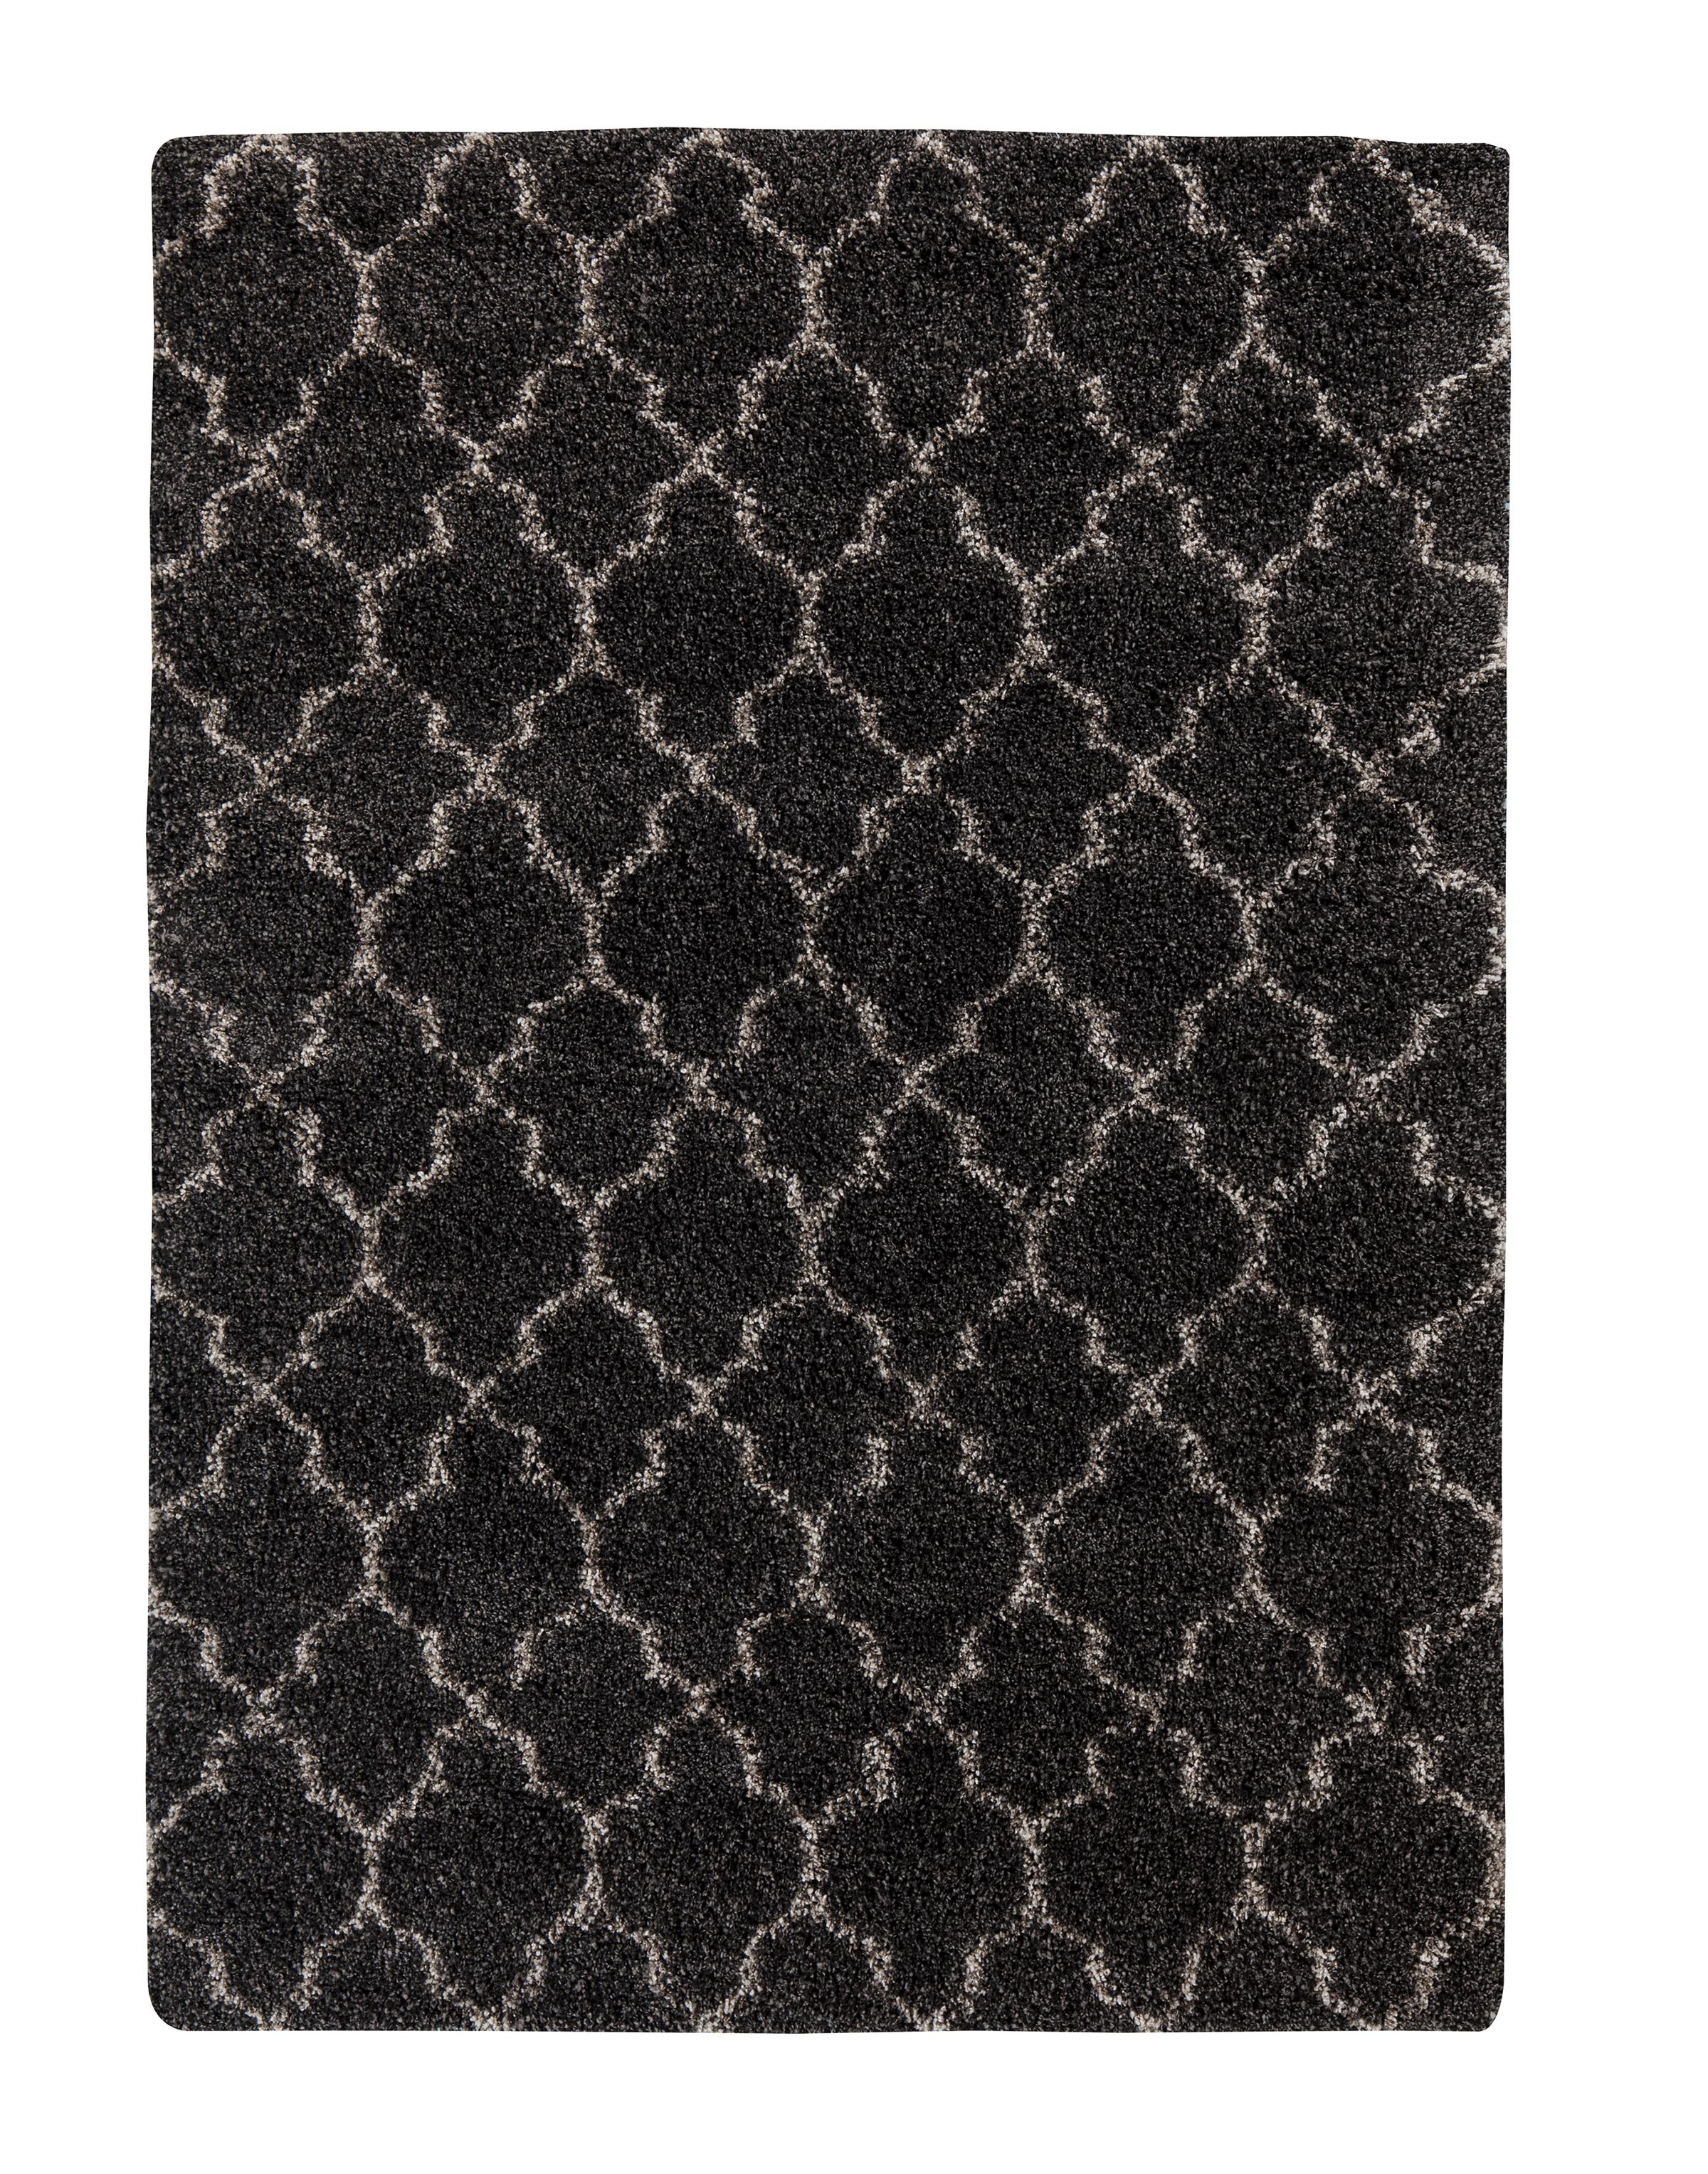 Signature Design by Ashley Transitional Area Rugs Gate - Black Large Rug - Item Number: R401191